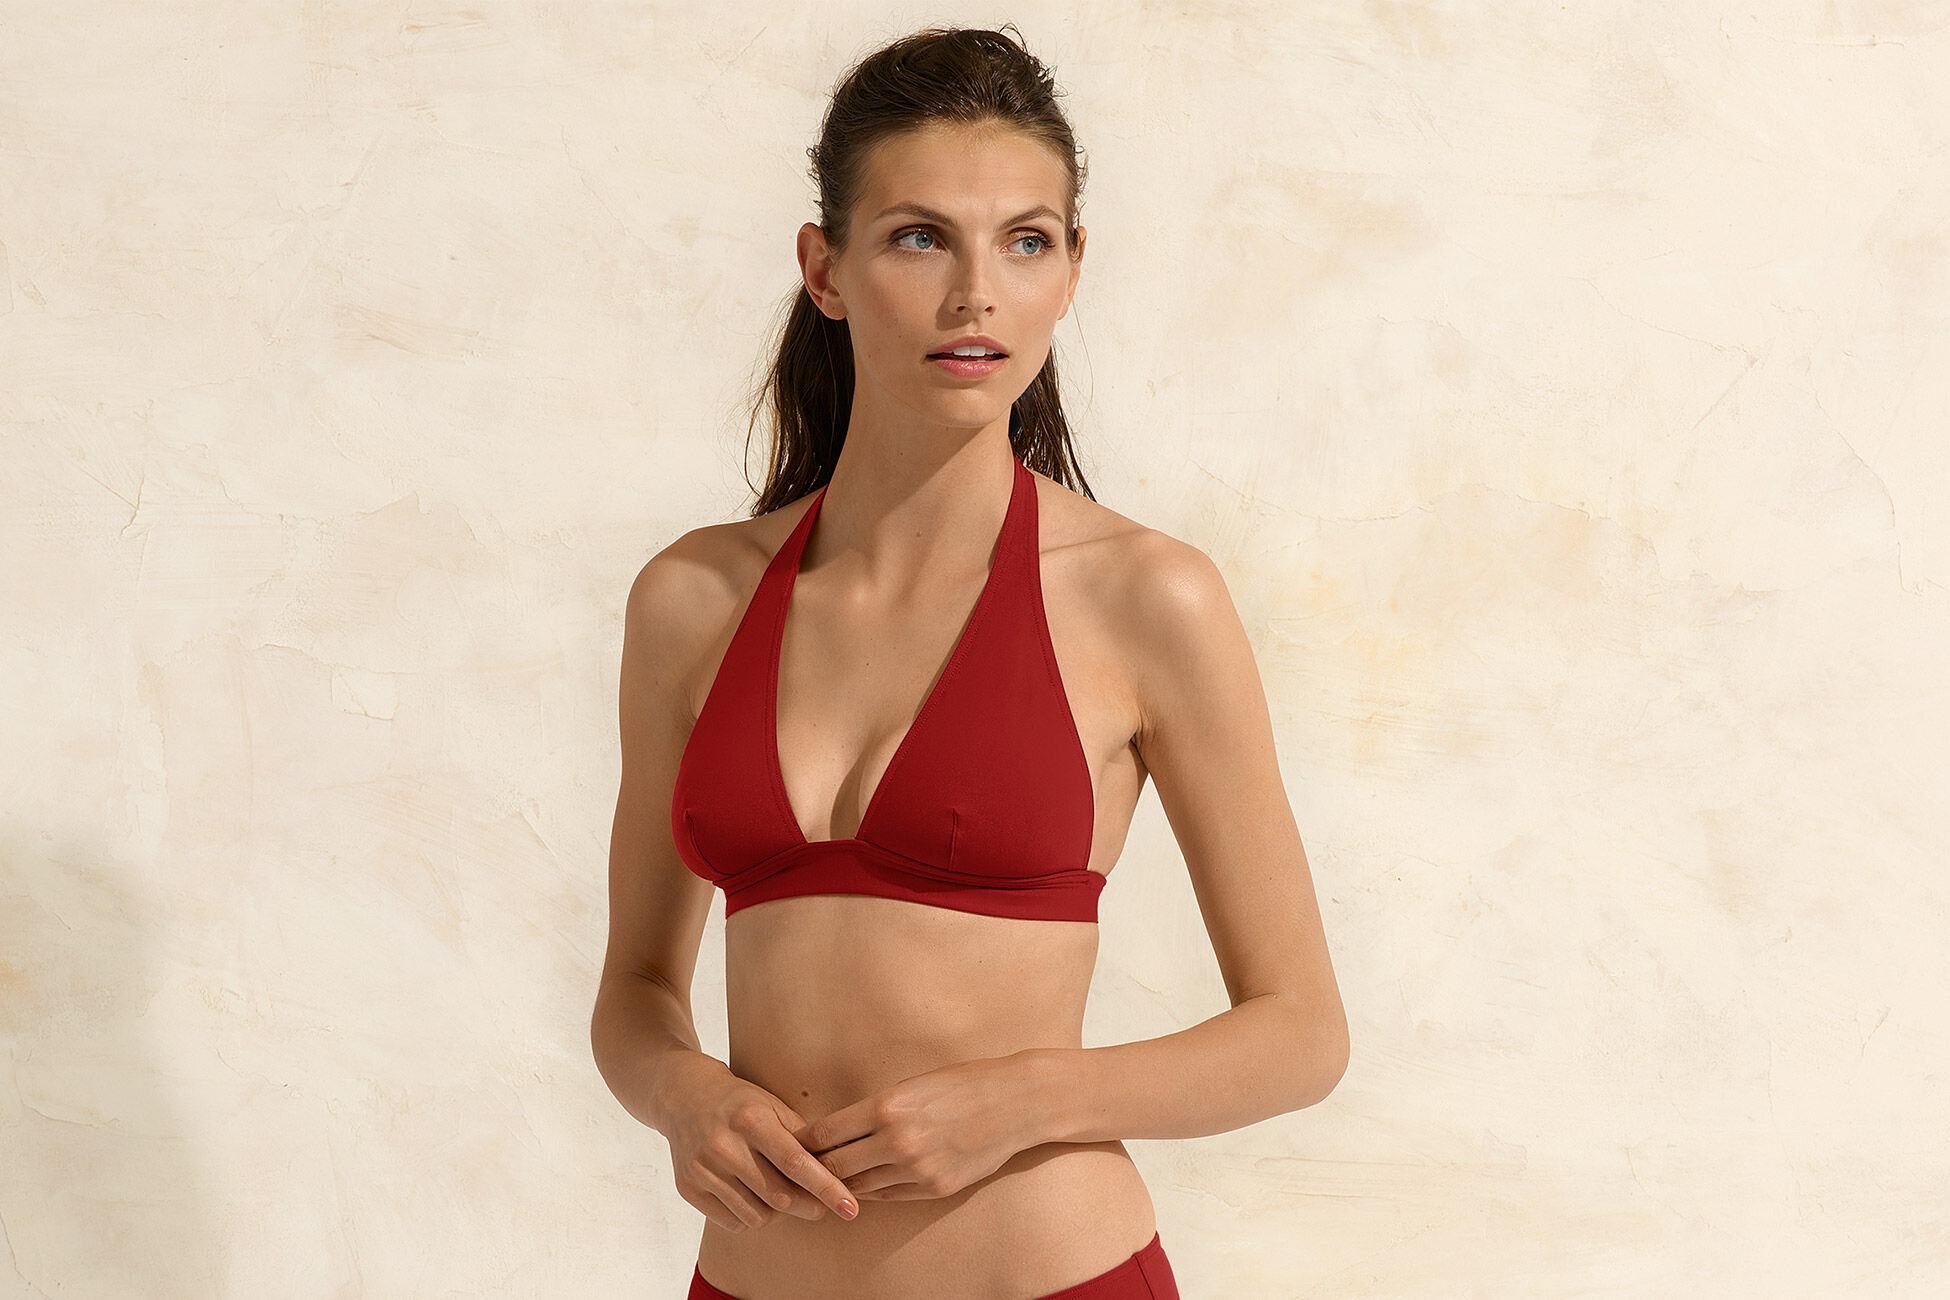 Foulard Full-cup triangle bikini top standard view �